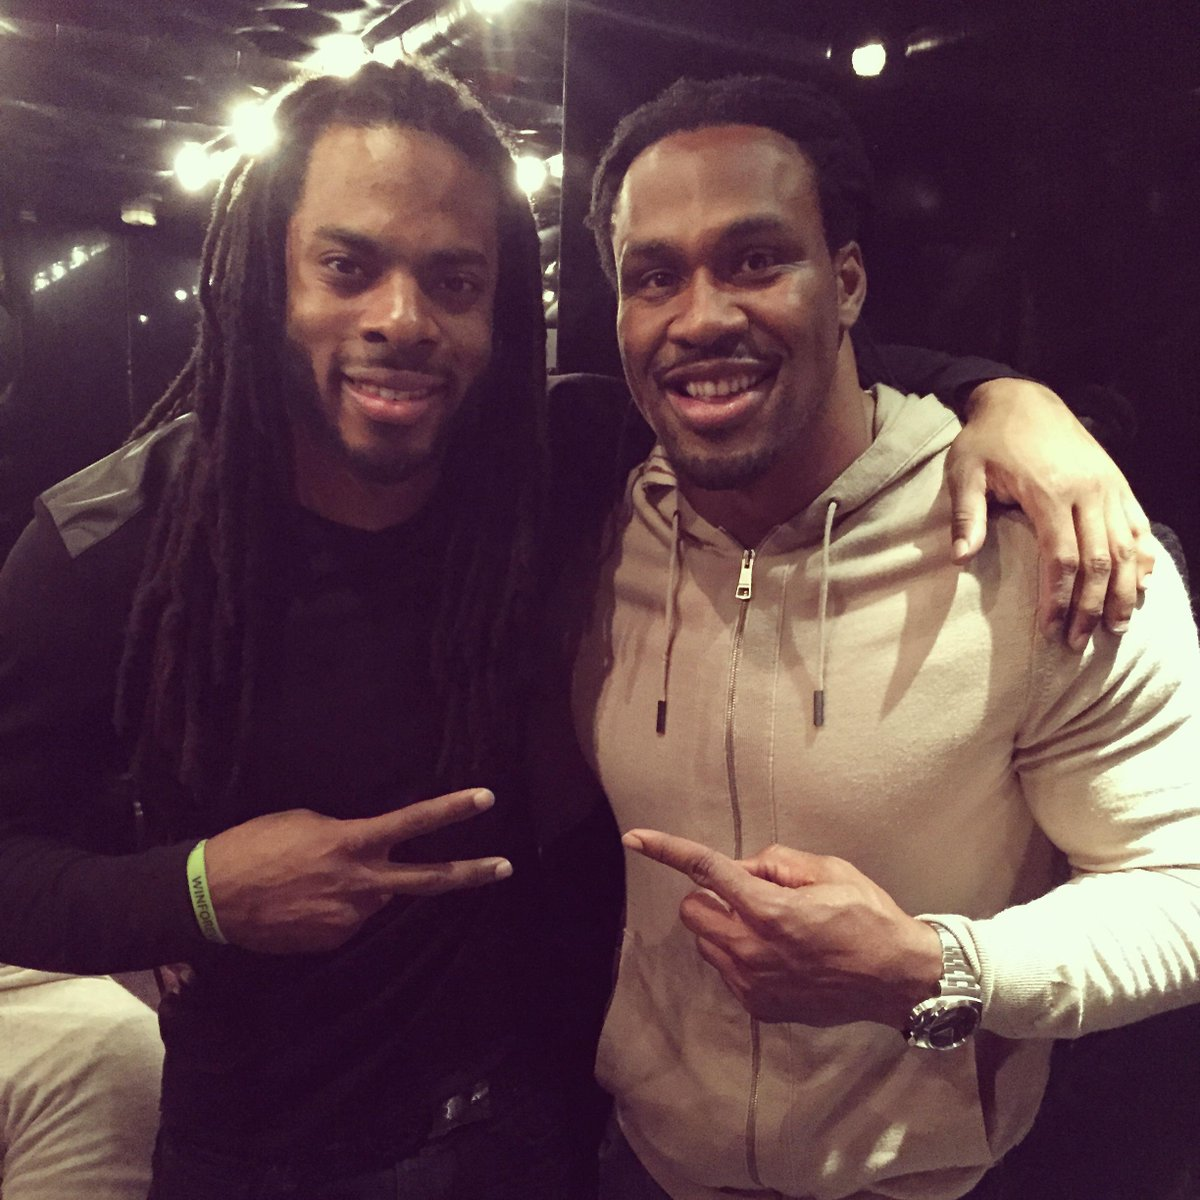 Hanging out with my son's favorite player @RSherman_25. Wish it was still me lol... http://t.co/0amuaP6cJM